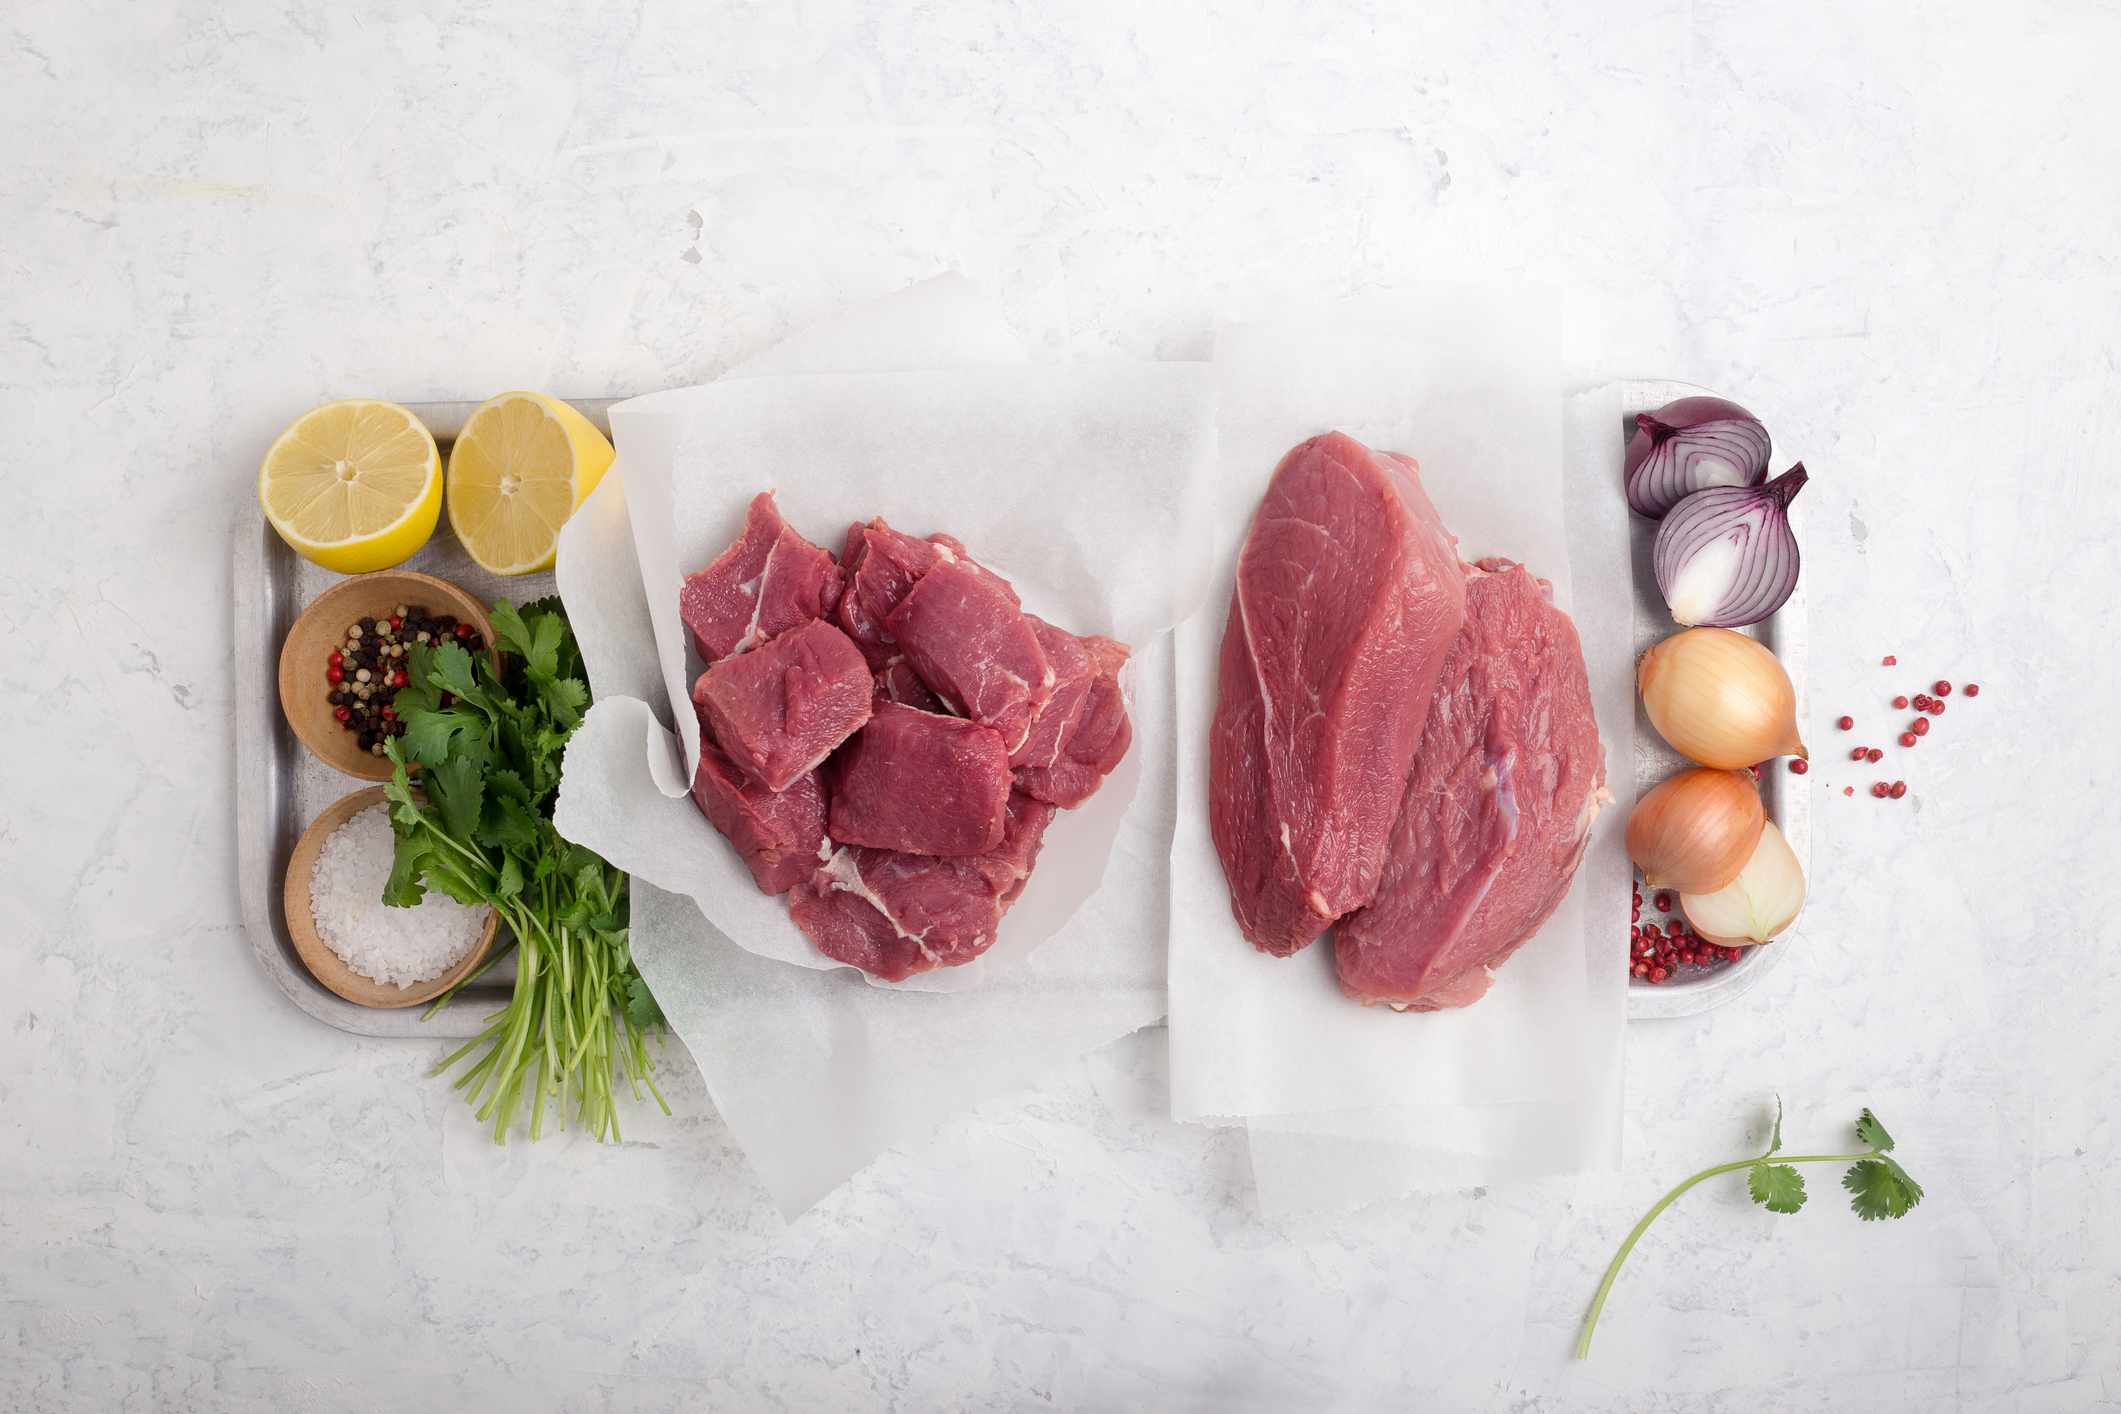 Selection of fresh cuts of beef